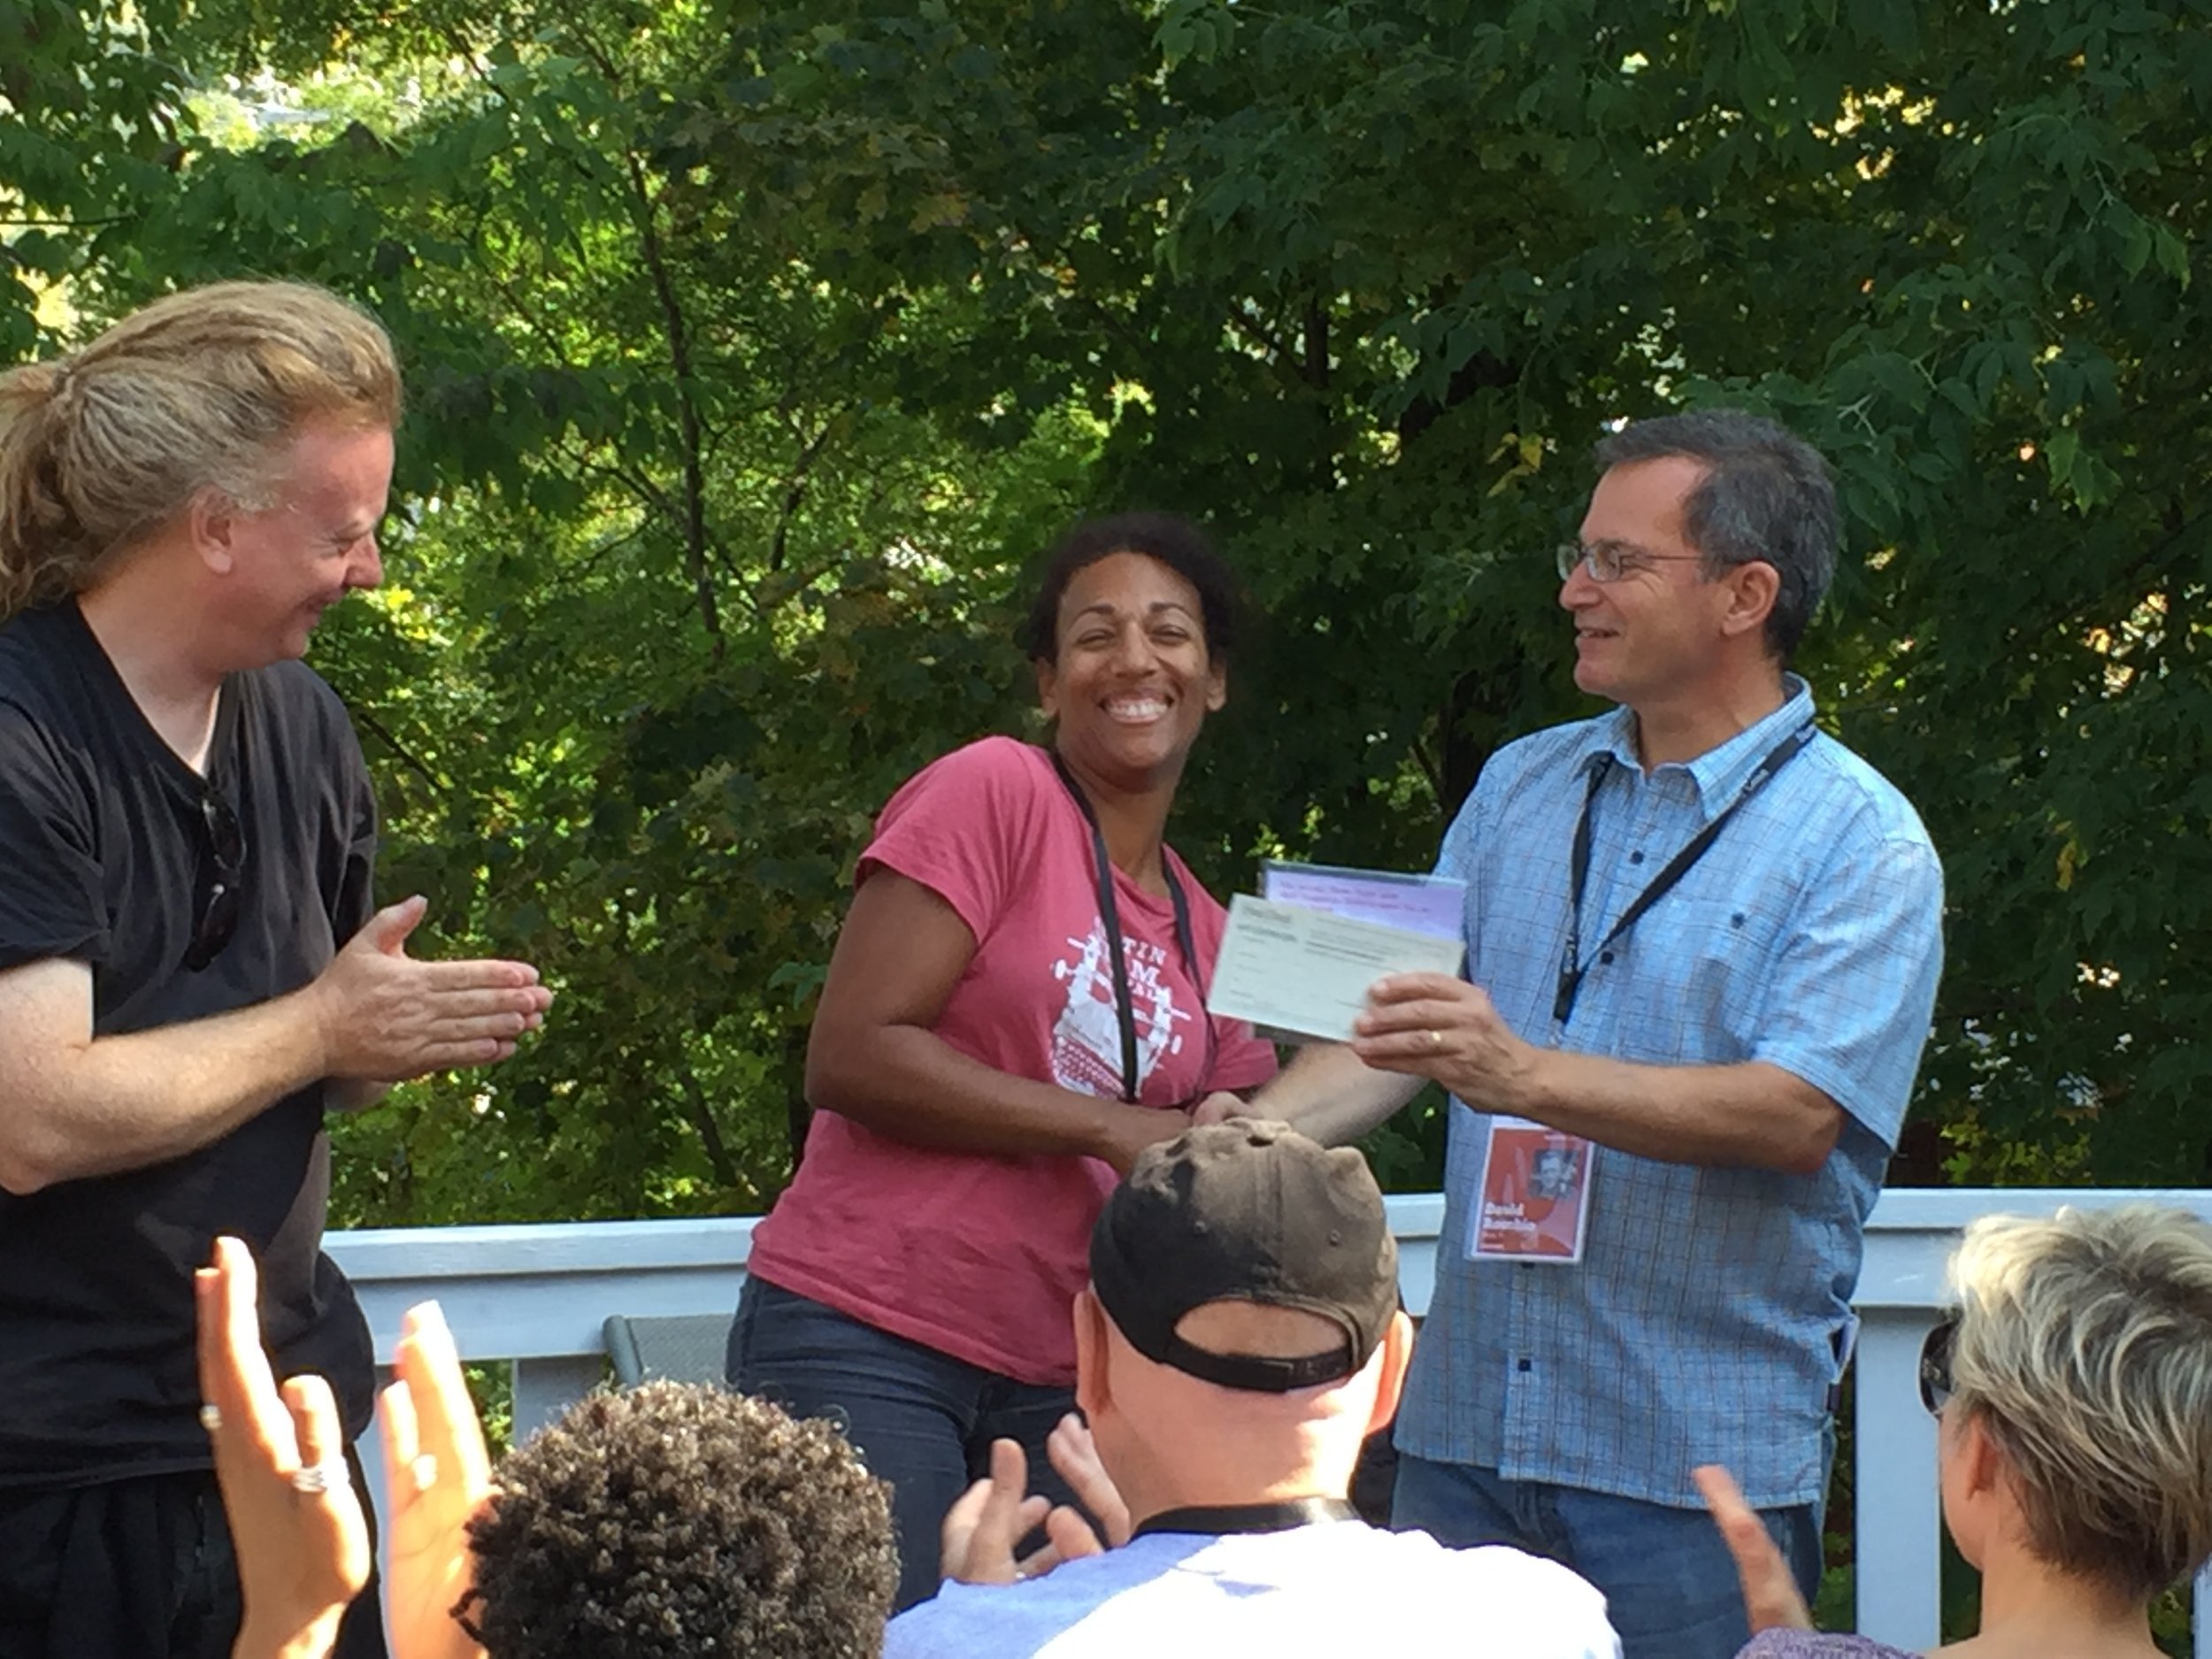 Melody Cooper being awarded Stowe Story Labs / Tangerine Entertainment Fellowship, Fall 2017, with Stowe Story Labs Founders David Pope and David Rocchio